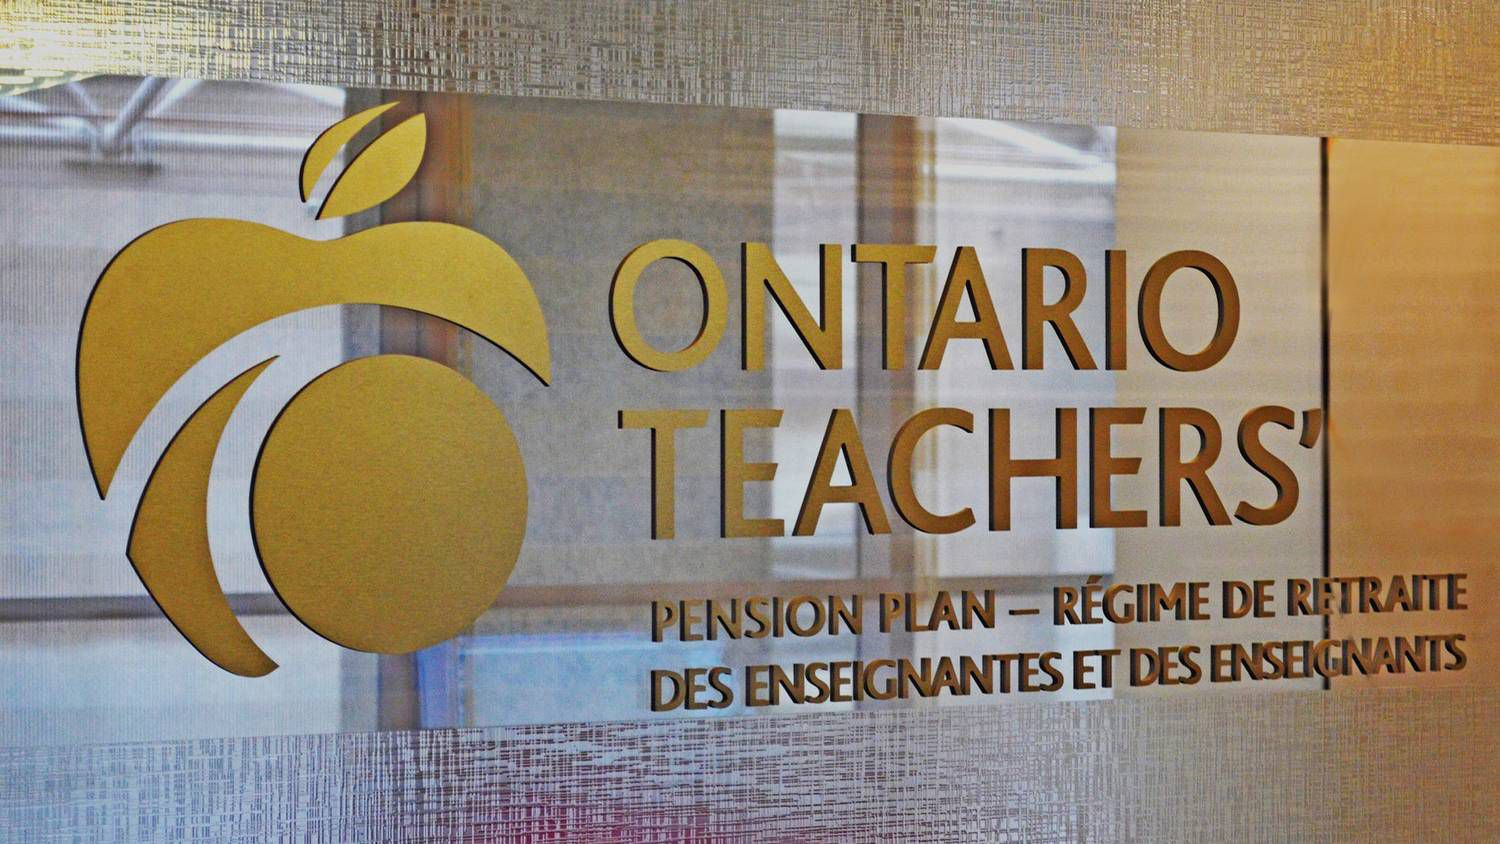 Teachers eyes new tack after 25 years - The Globe and Mail